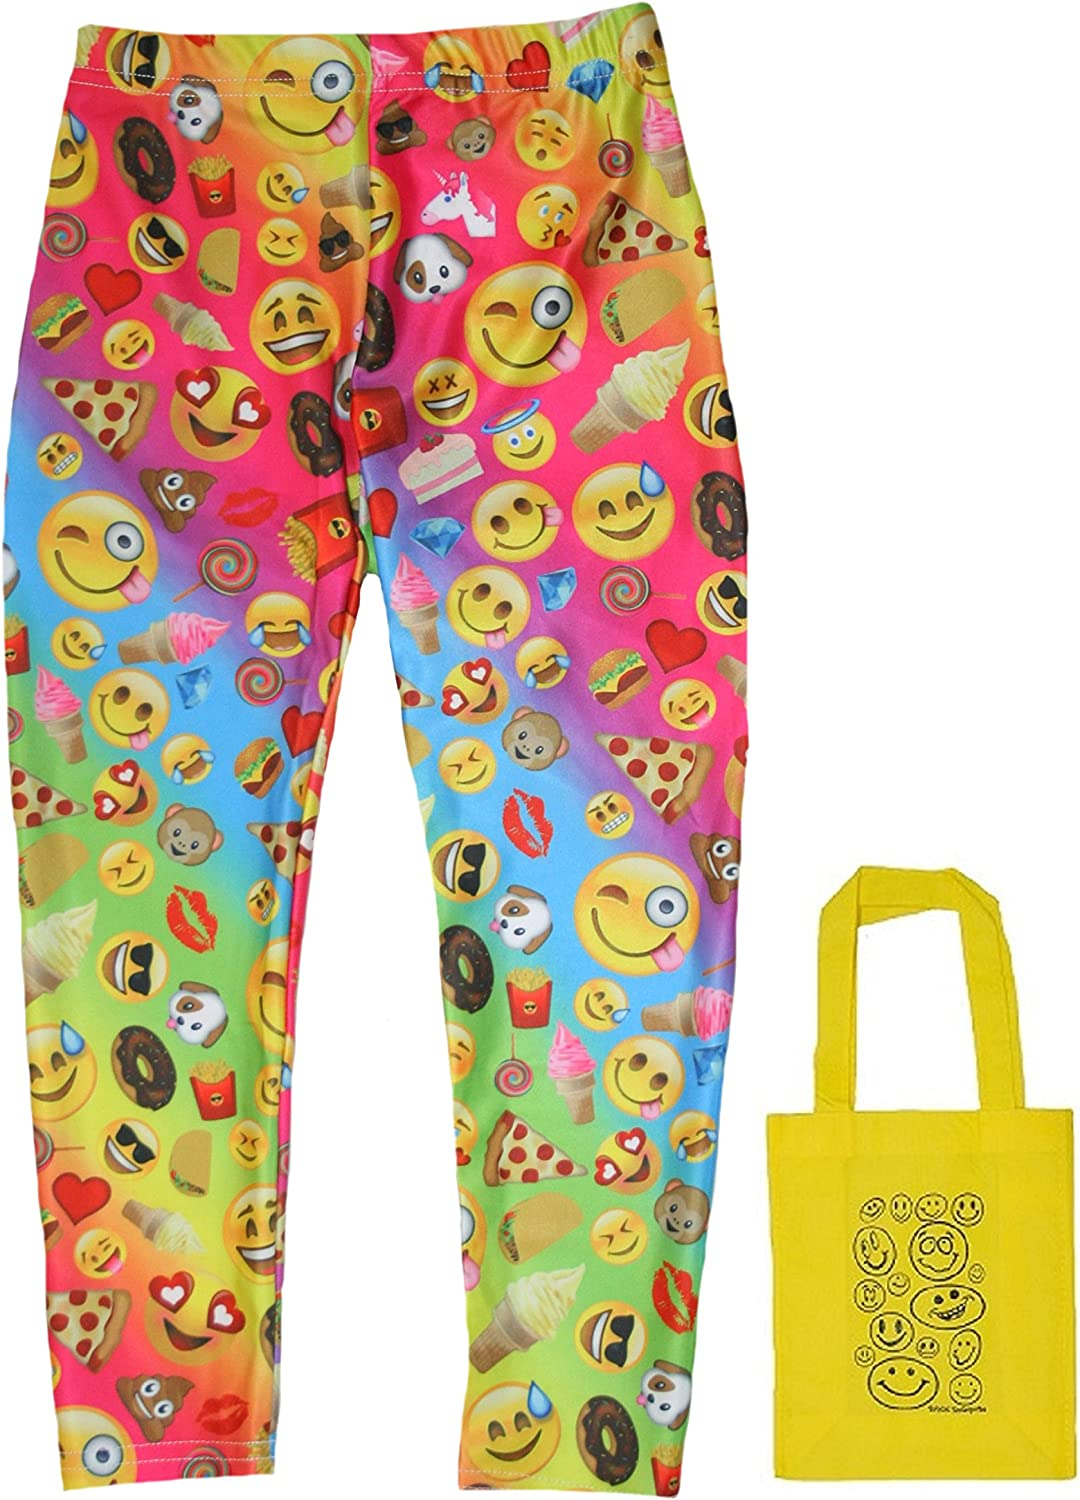 Emojicon Version 2 Faces & Treats Big Girls' Leggings & Tote - 2 Piece Gift Set